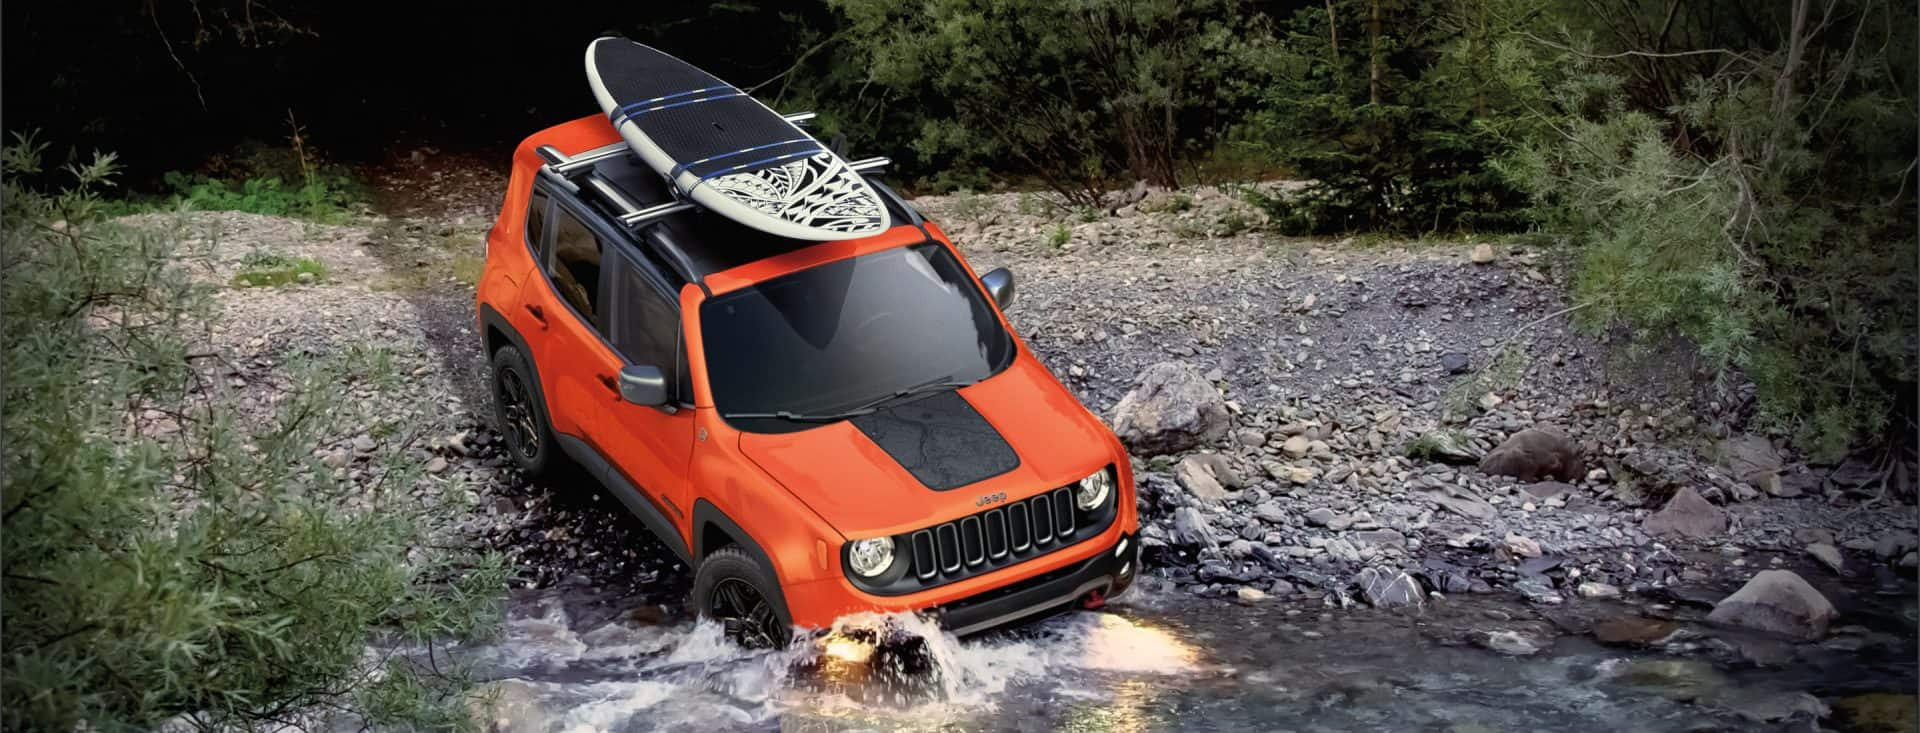 2018 Jeep Renegade Off Road Capability Features Tiger River Spas Hot Tub Wiring Diagram